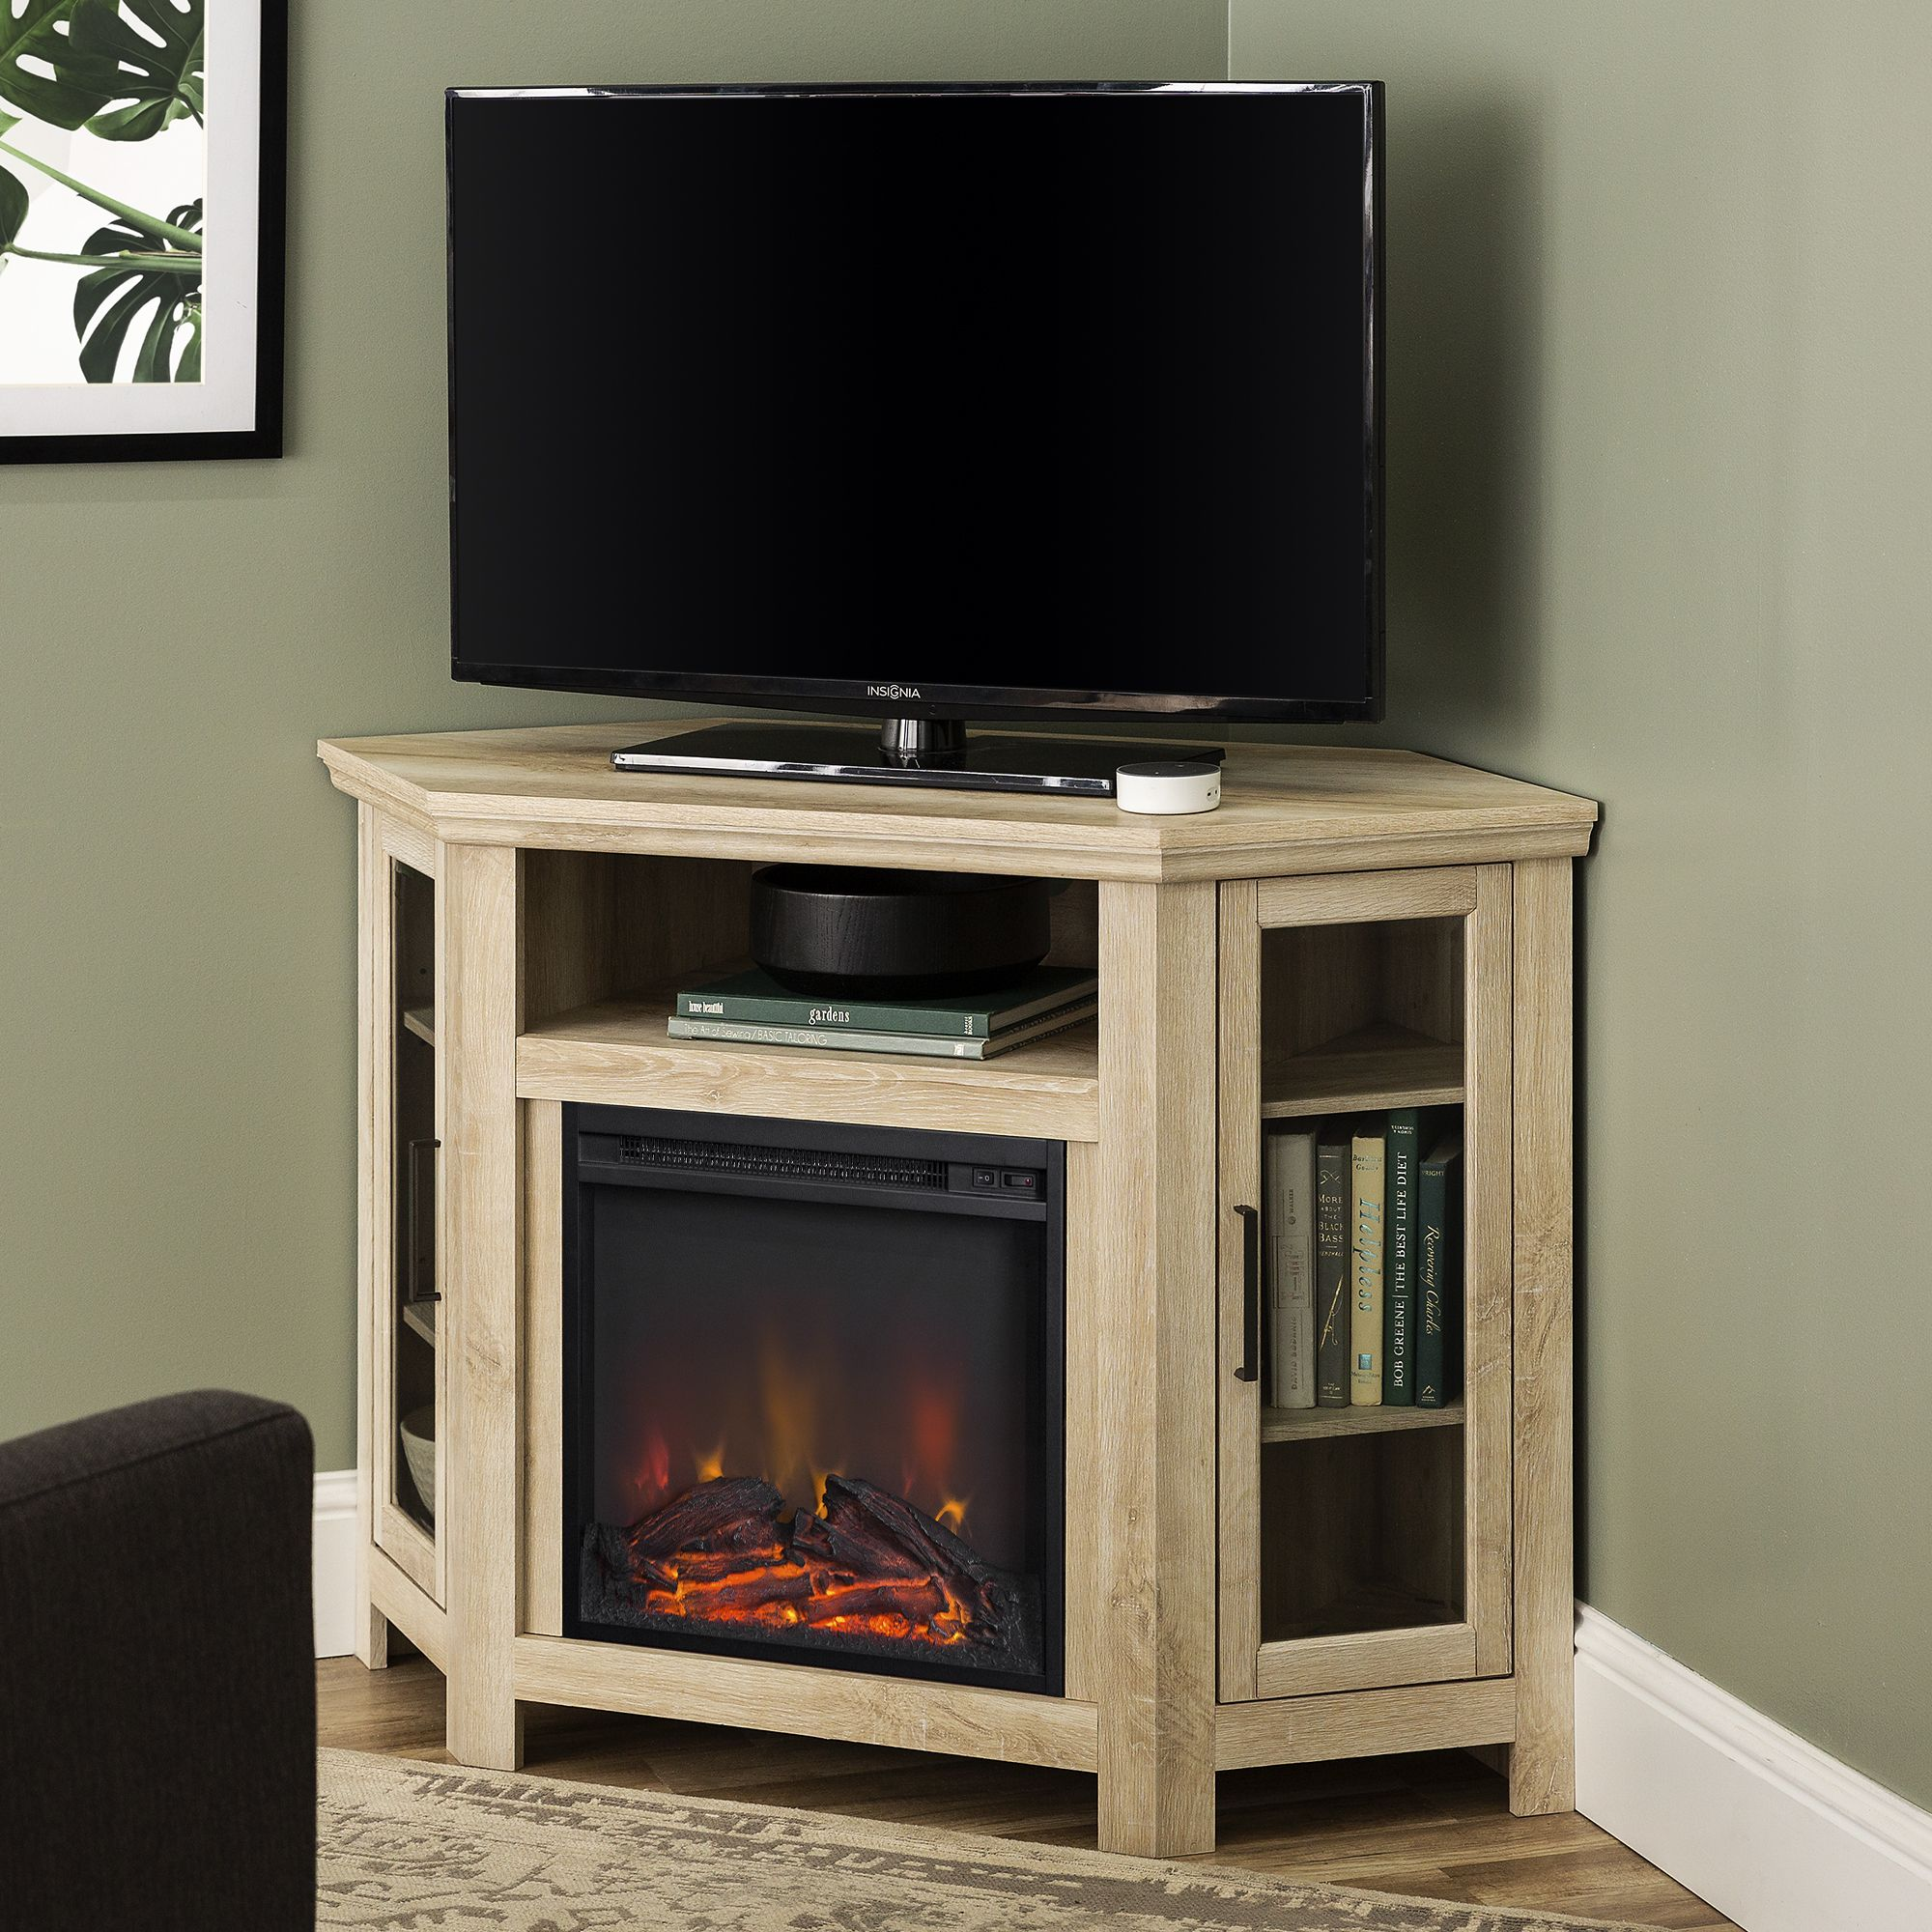 Home Fireplace tv stand, Corner fireplace tv stand